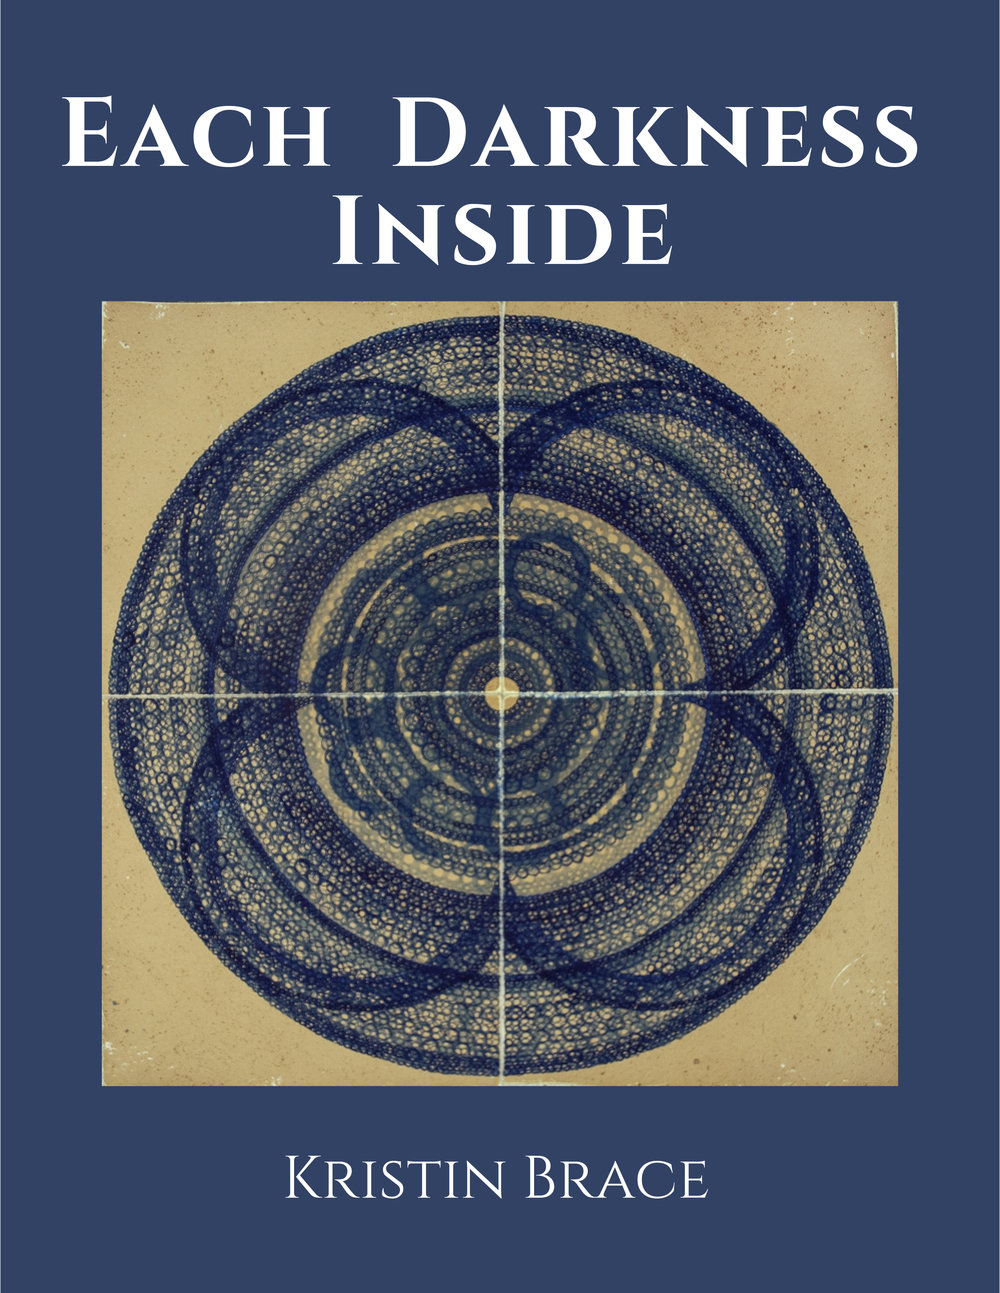 Each Darkness Inside - A poetry chapbook exploring the overlooked, the interior, the unspoken.Click here to order directly from Finishing Line Press. Book ships in June 2019.